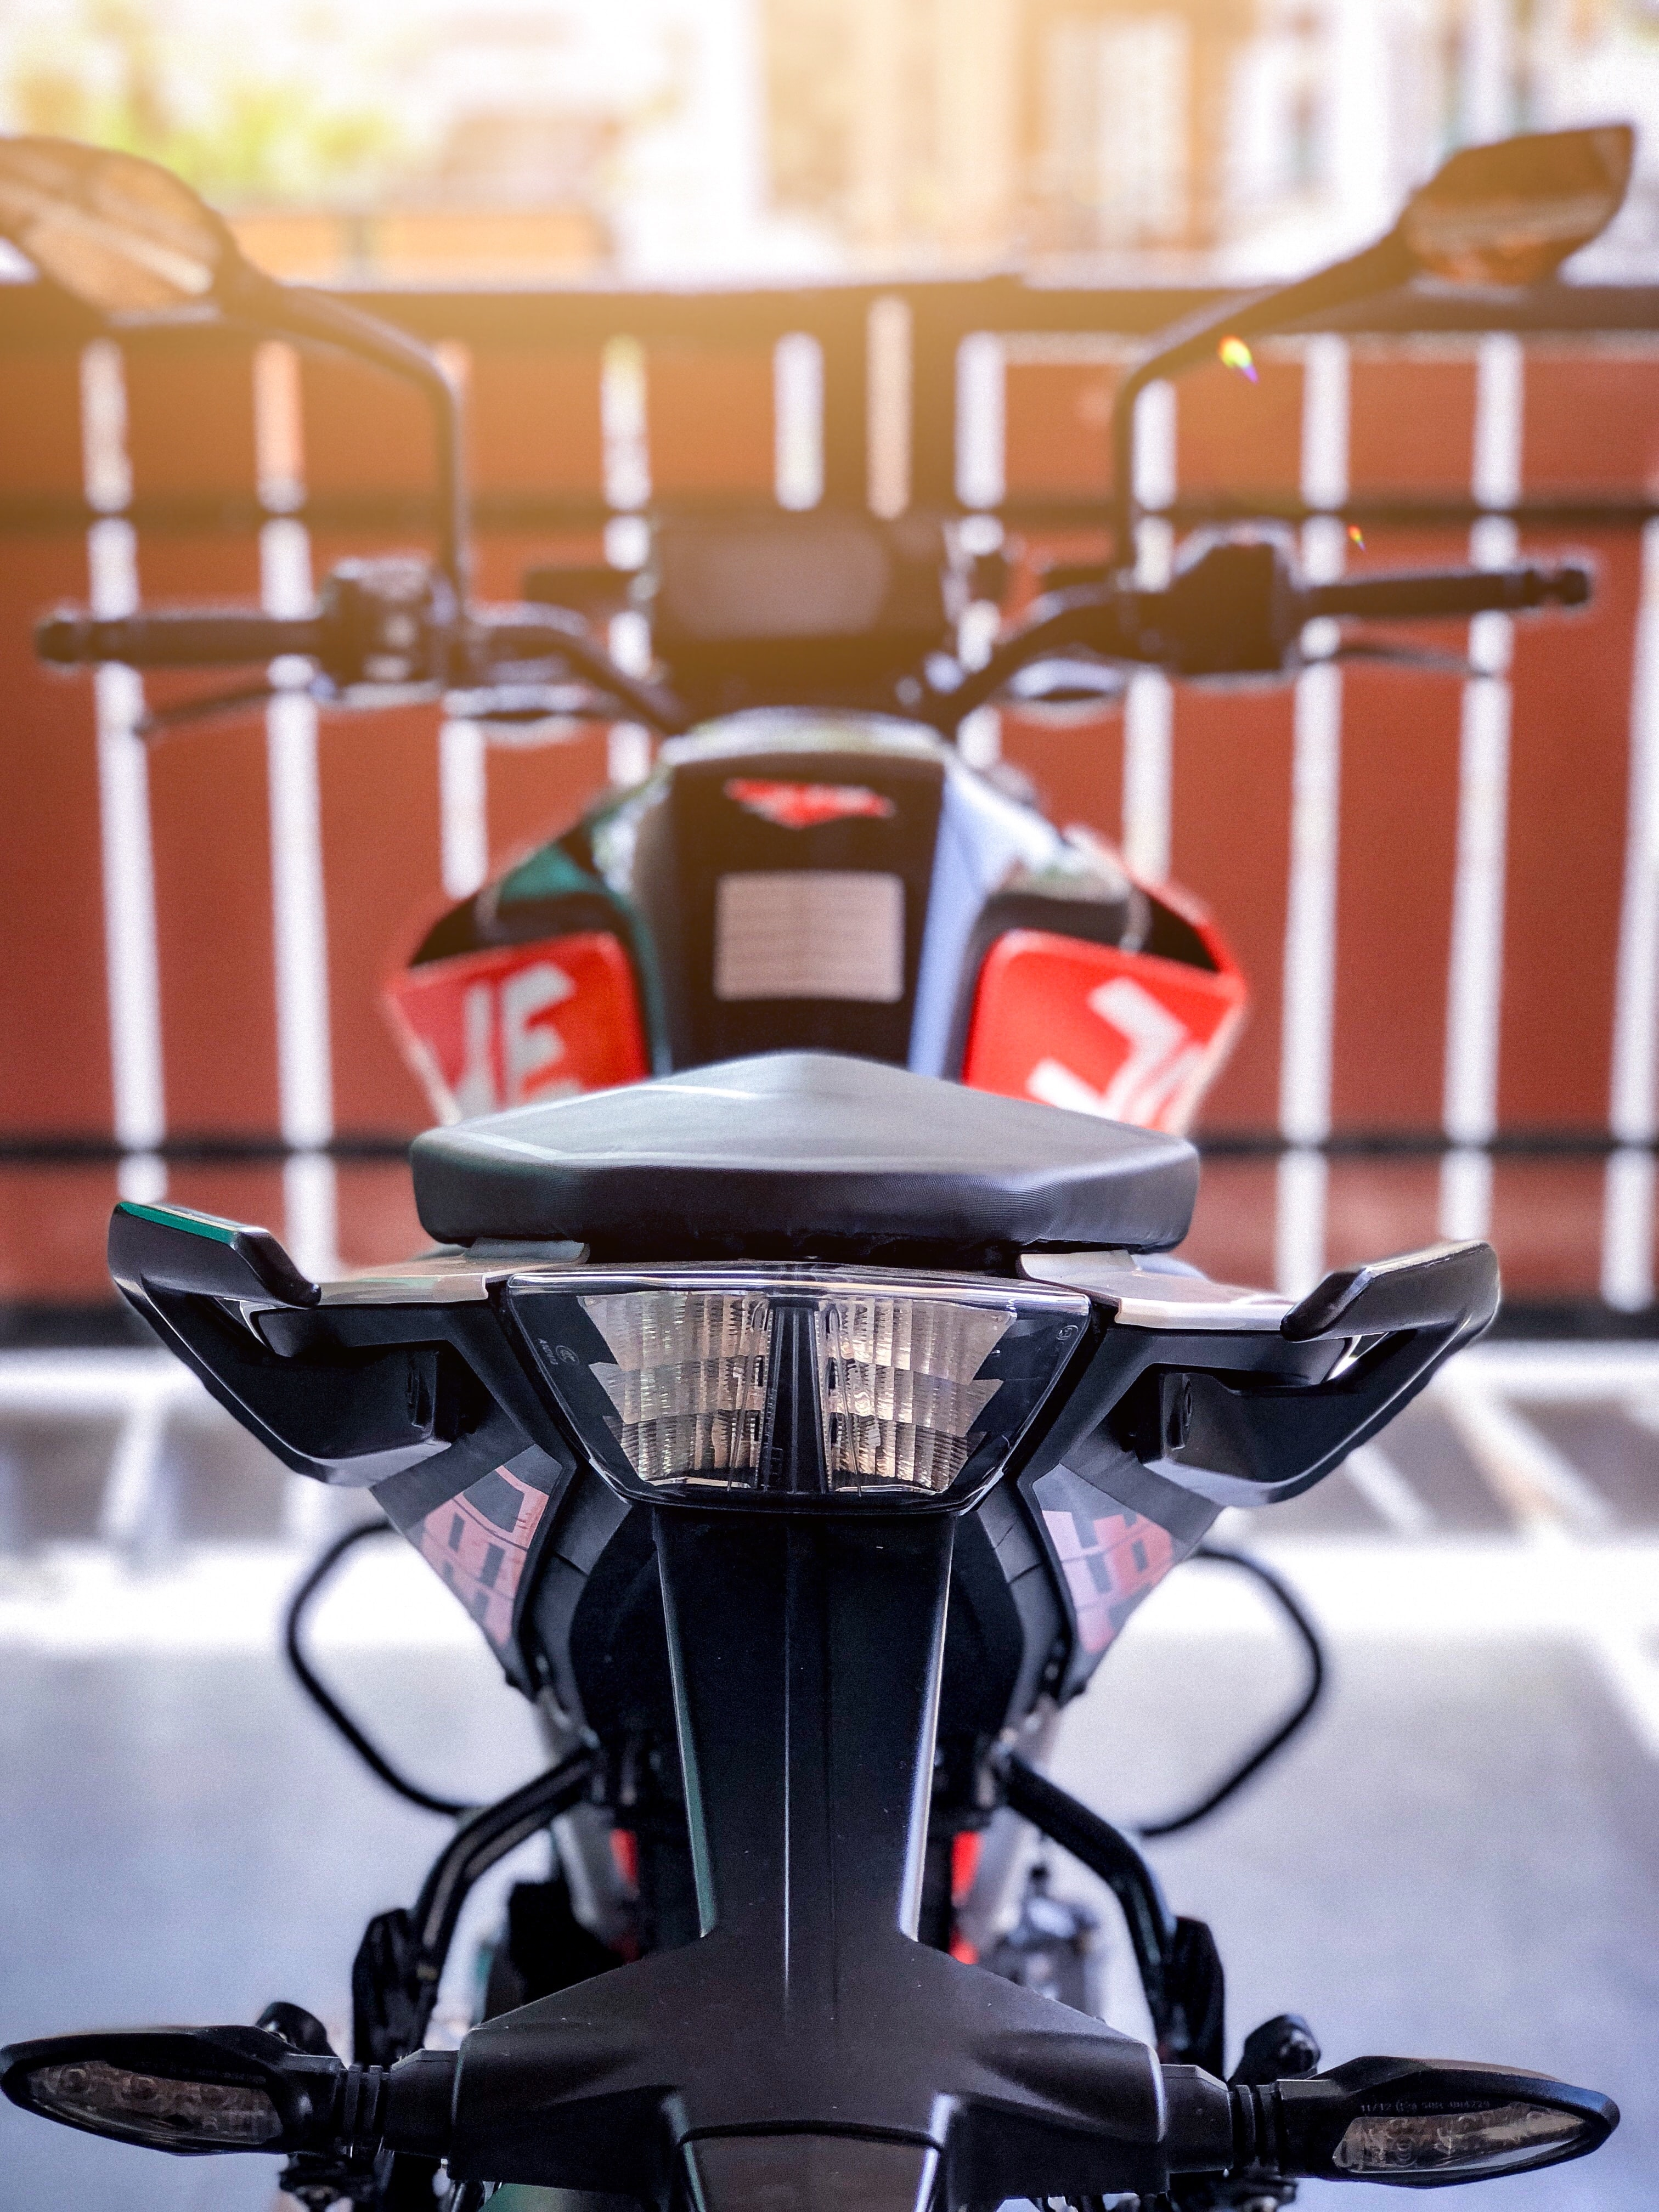 750 Ktm Duke Pictures Download Free Images On Unsplash